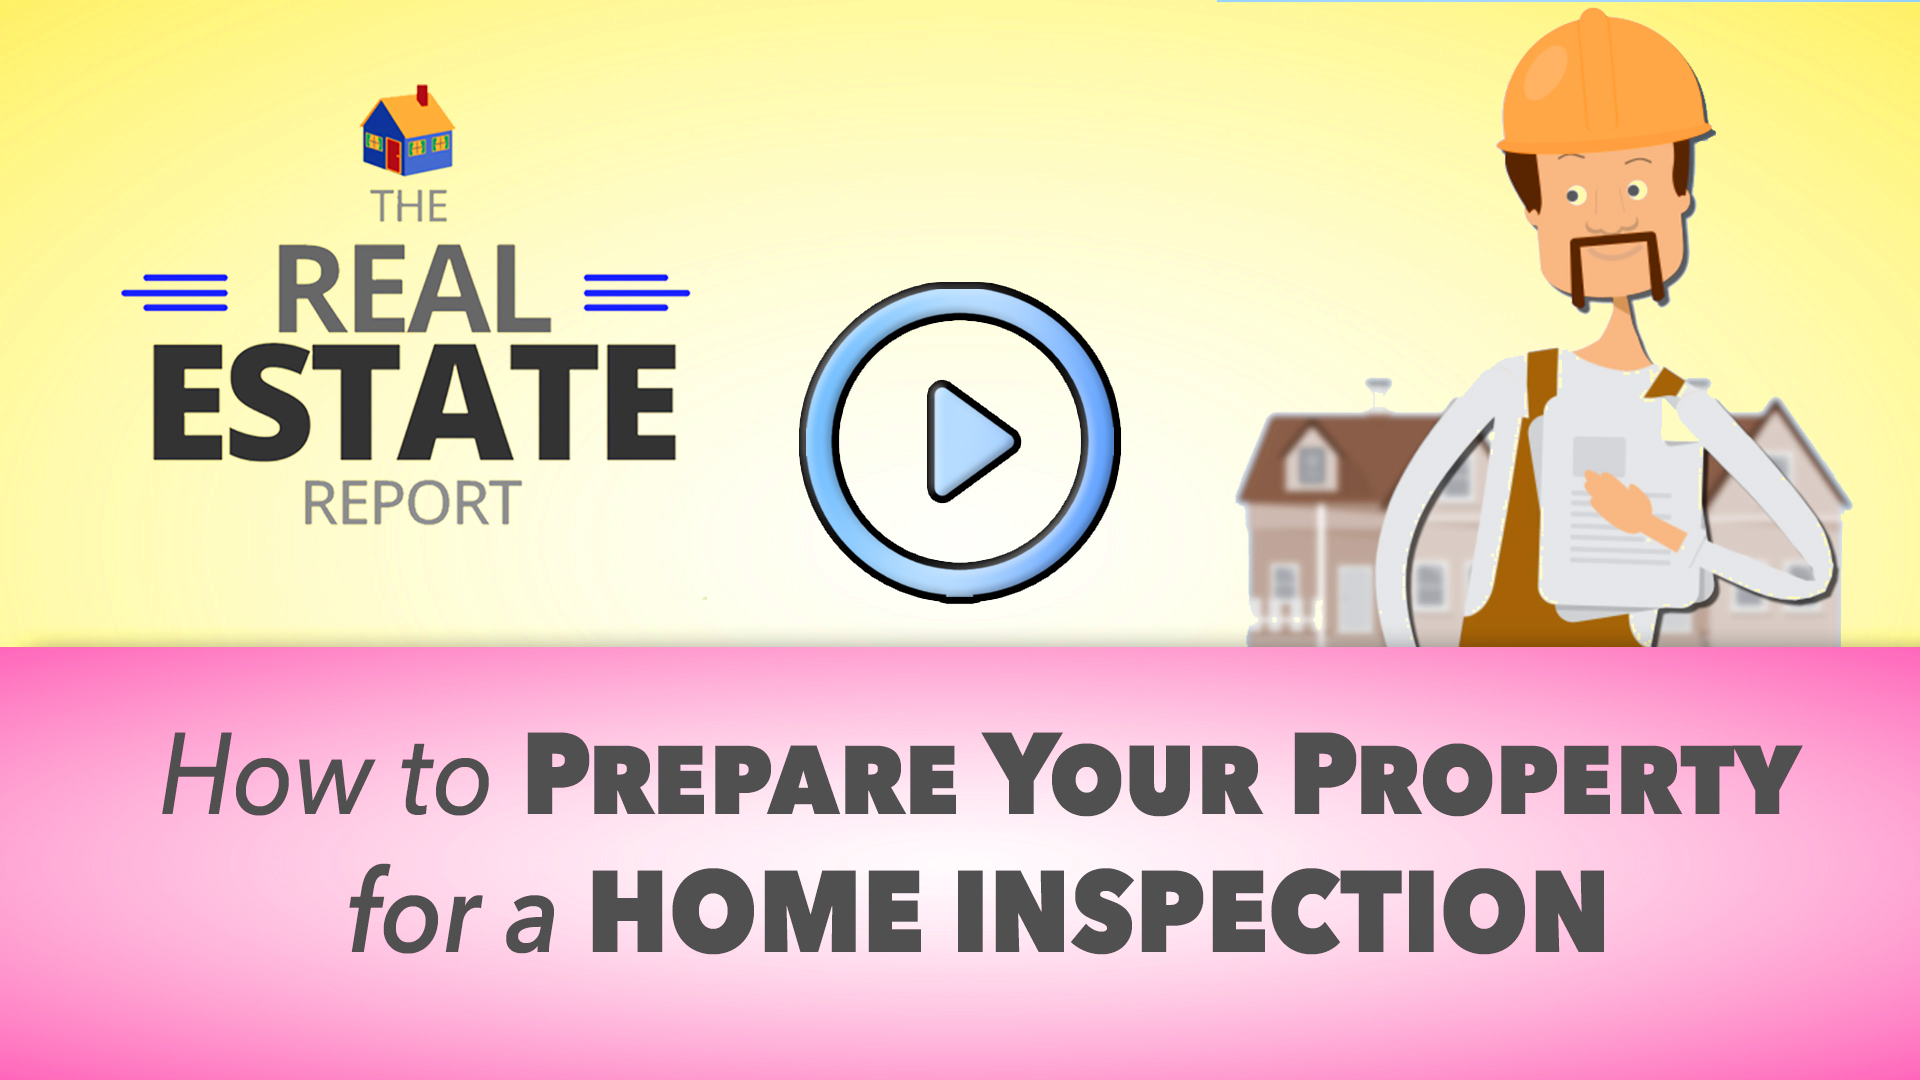 11 High Cost Inspection Traps You Should Know About Weeks Before Listing Your Home For Sale